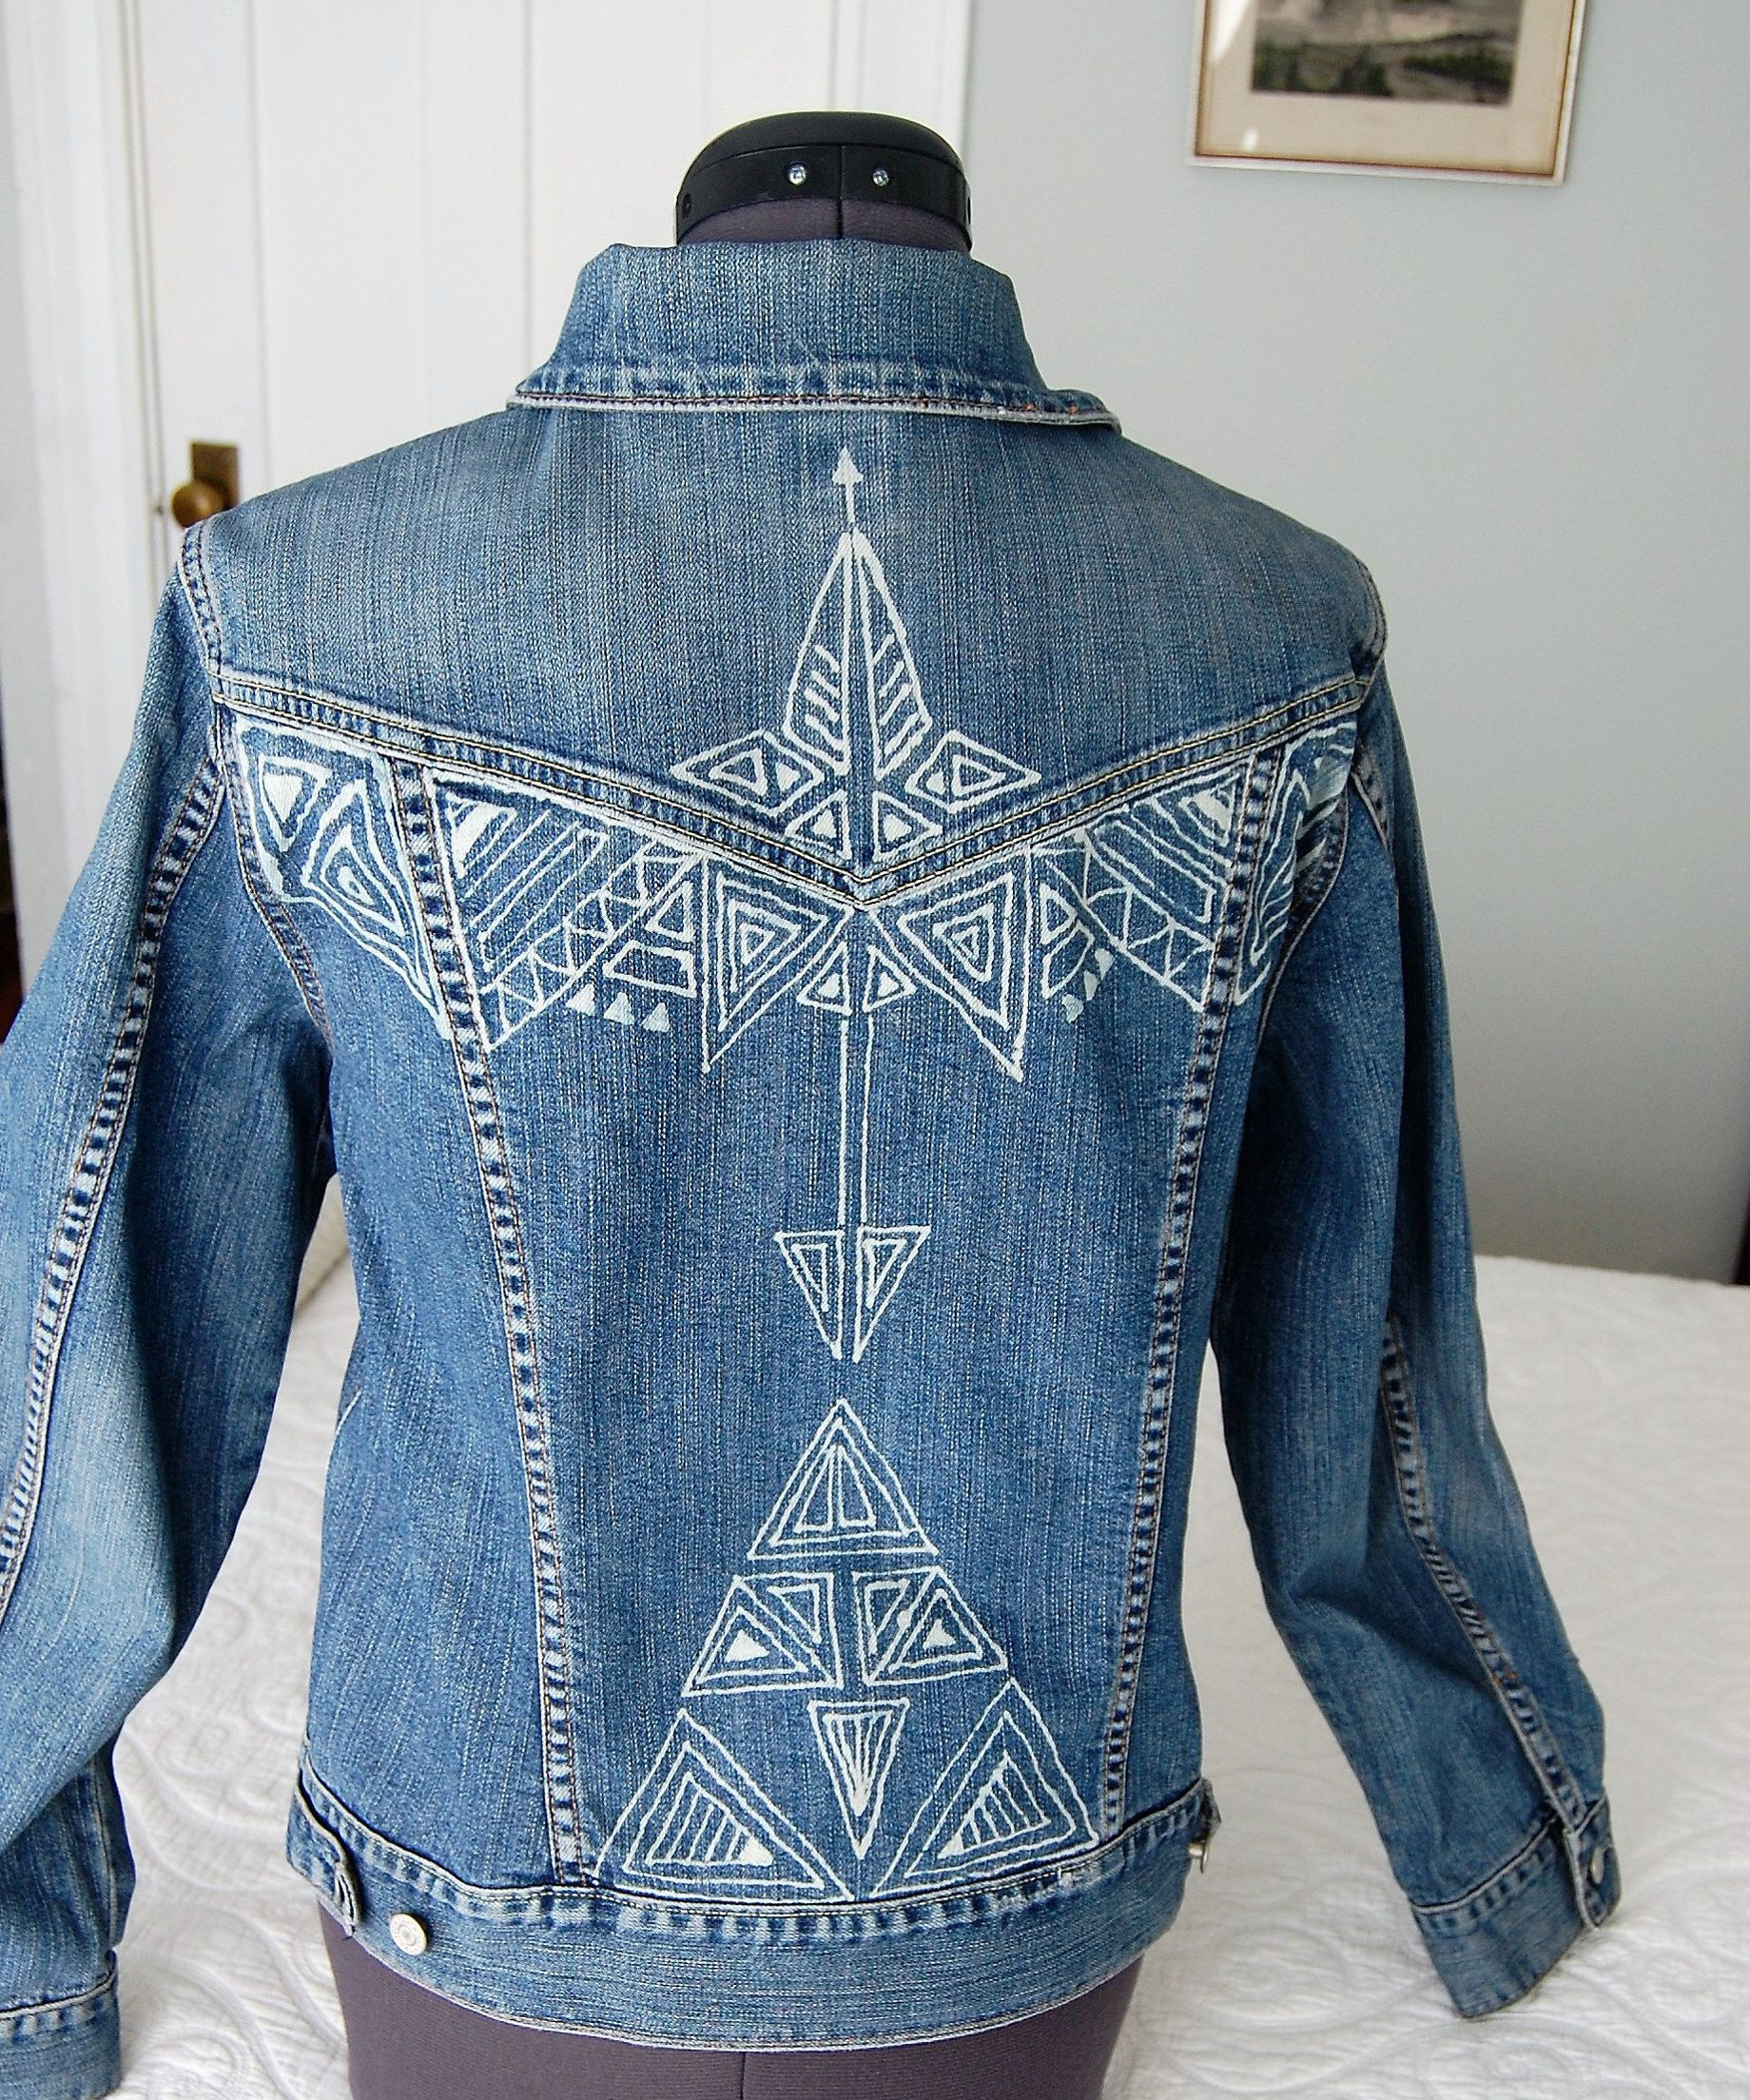 Bleach painted jean jacket medium by bcycles on etsy with